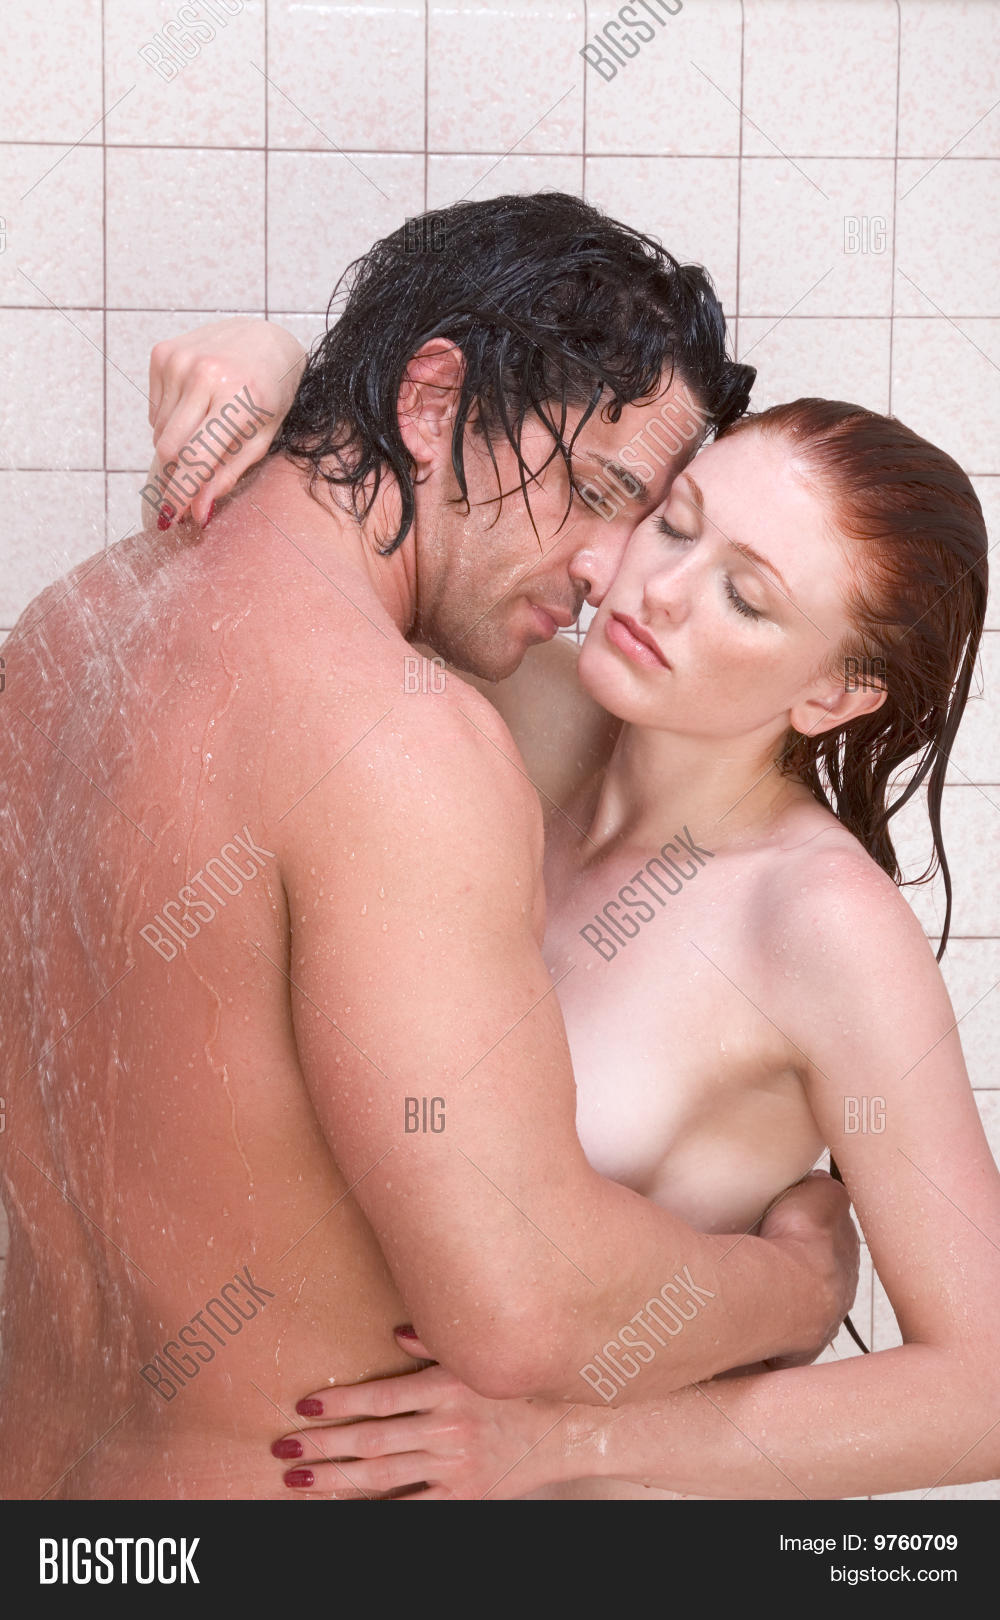 Man women in shower naked